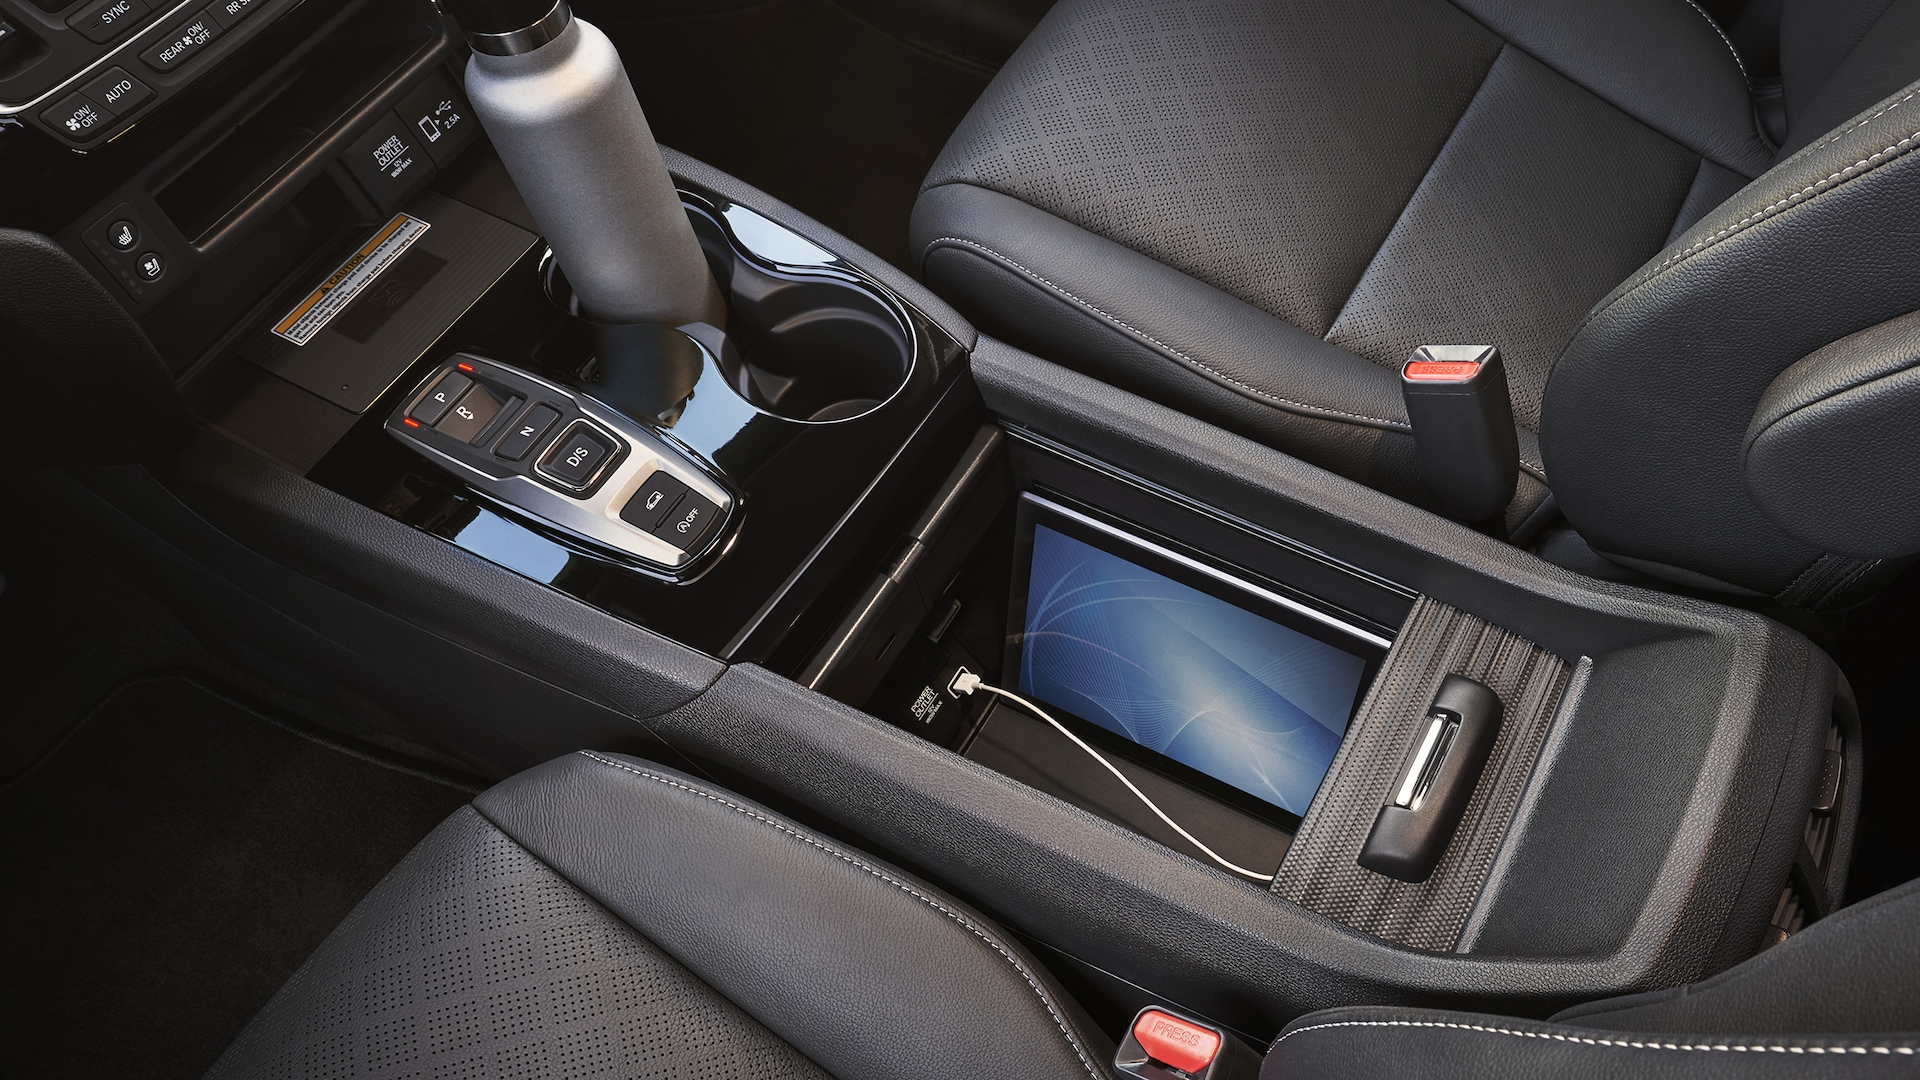 2020 Honda Passport Elite with Black Leather interior displaying multi-functional center console.